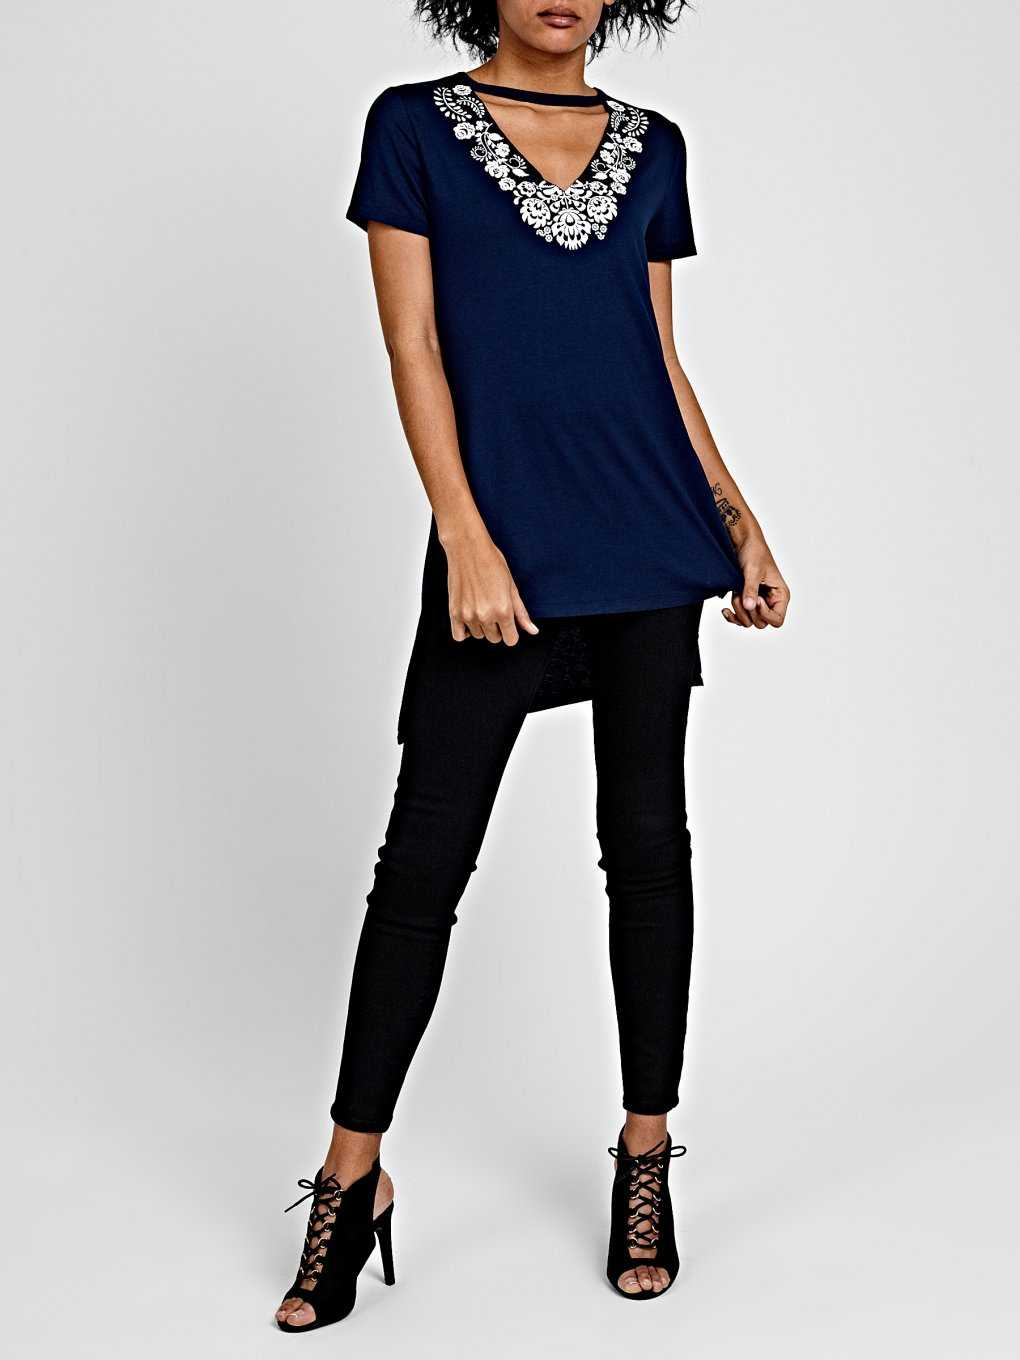 LONGLINE T-SHIRT WITH CHOKER COLLAR